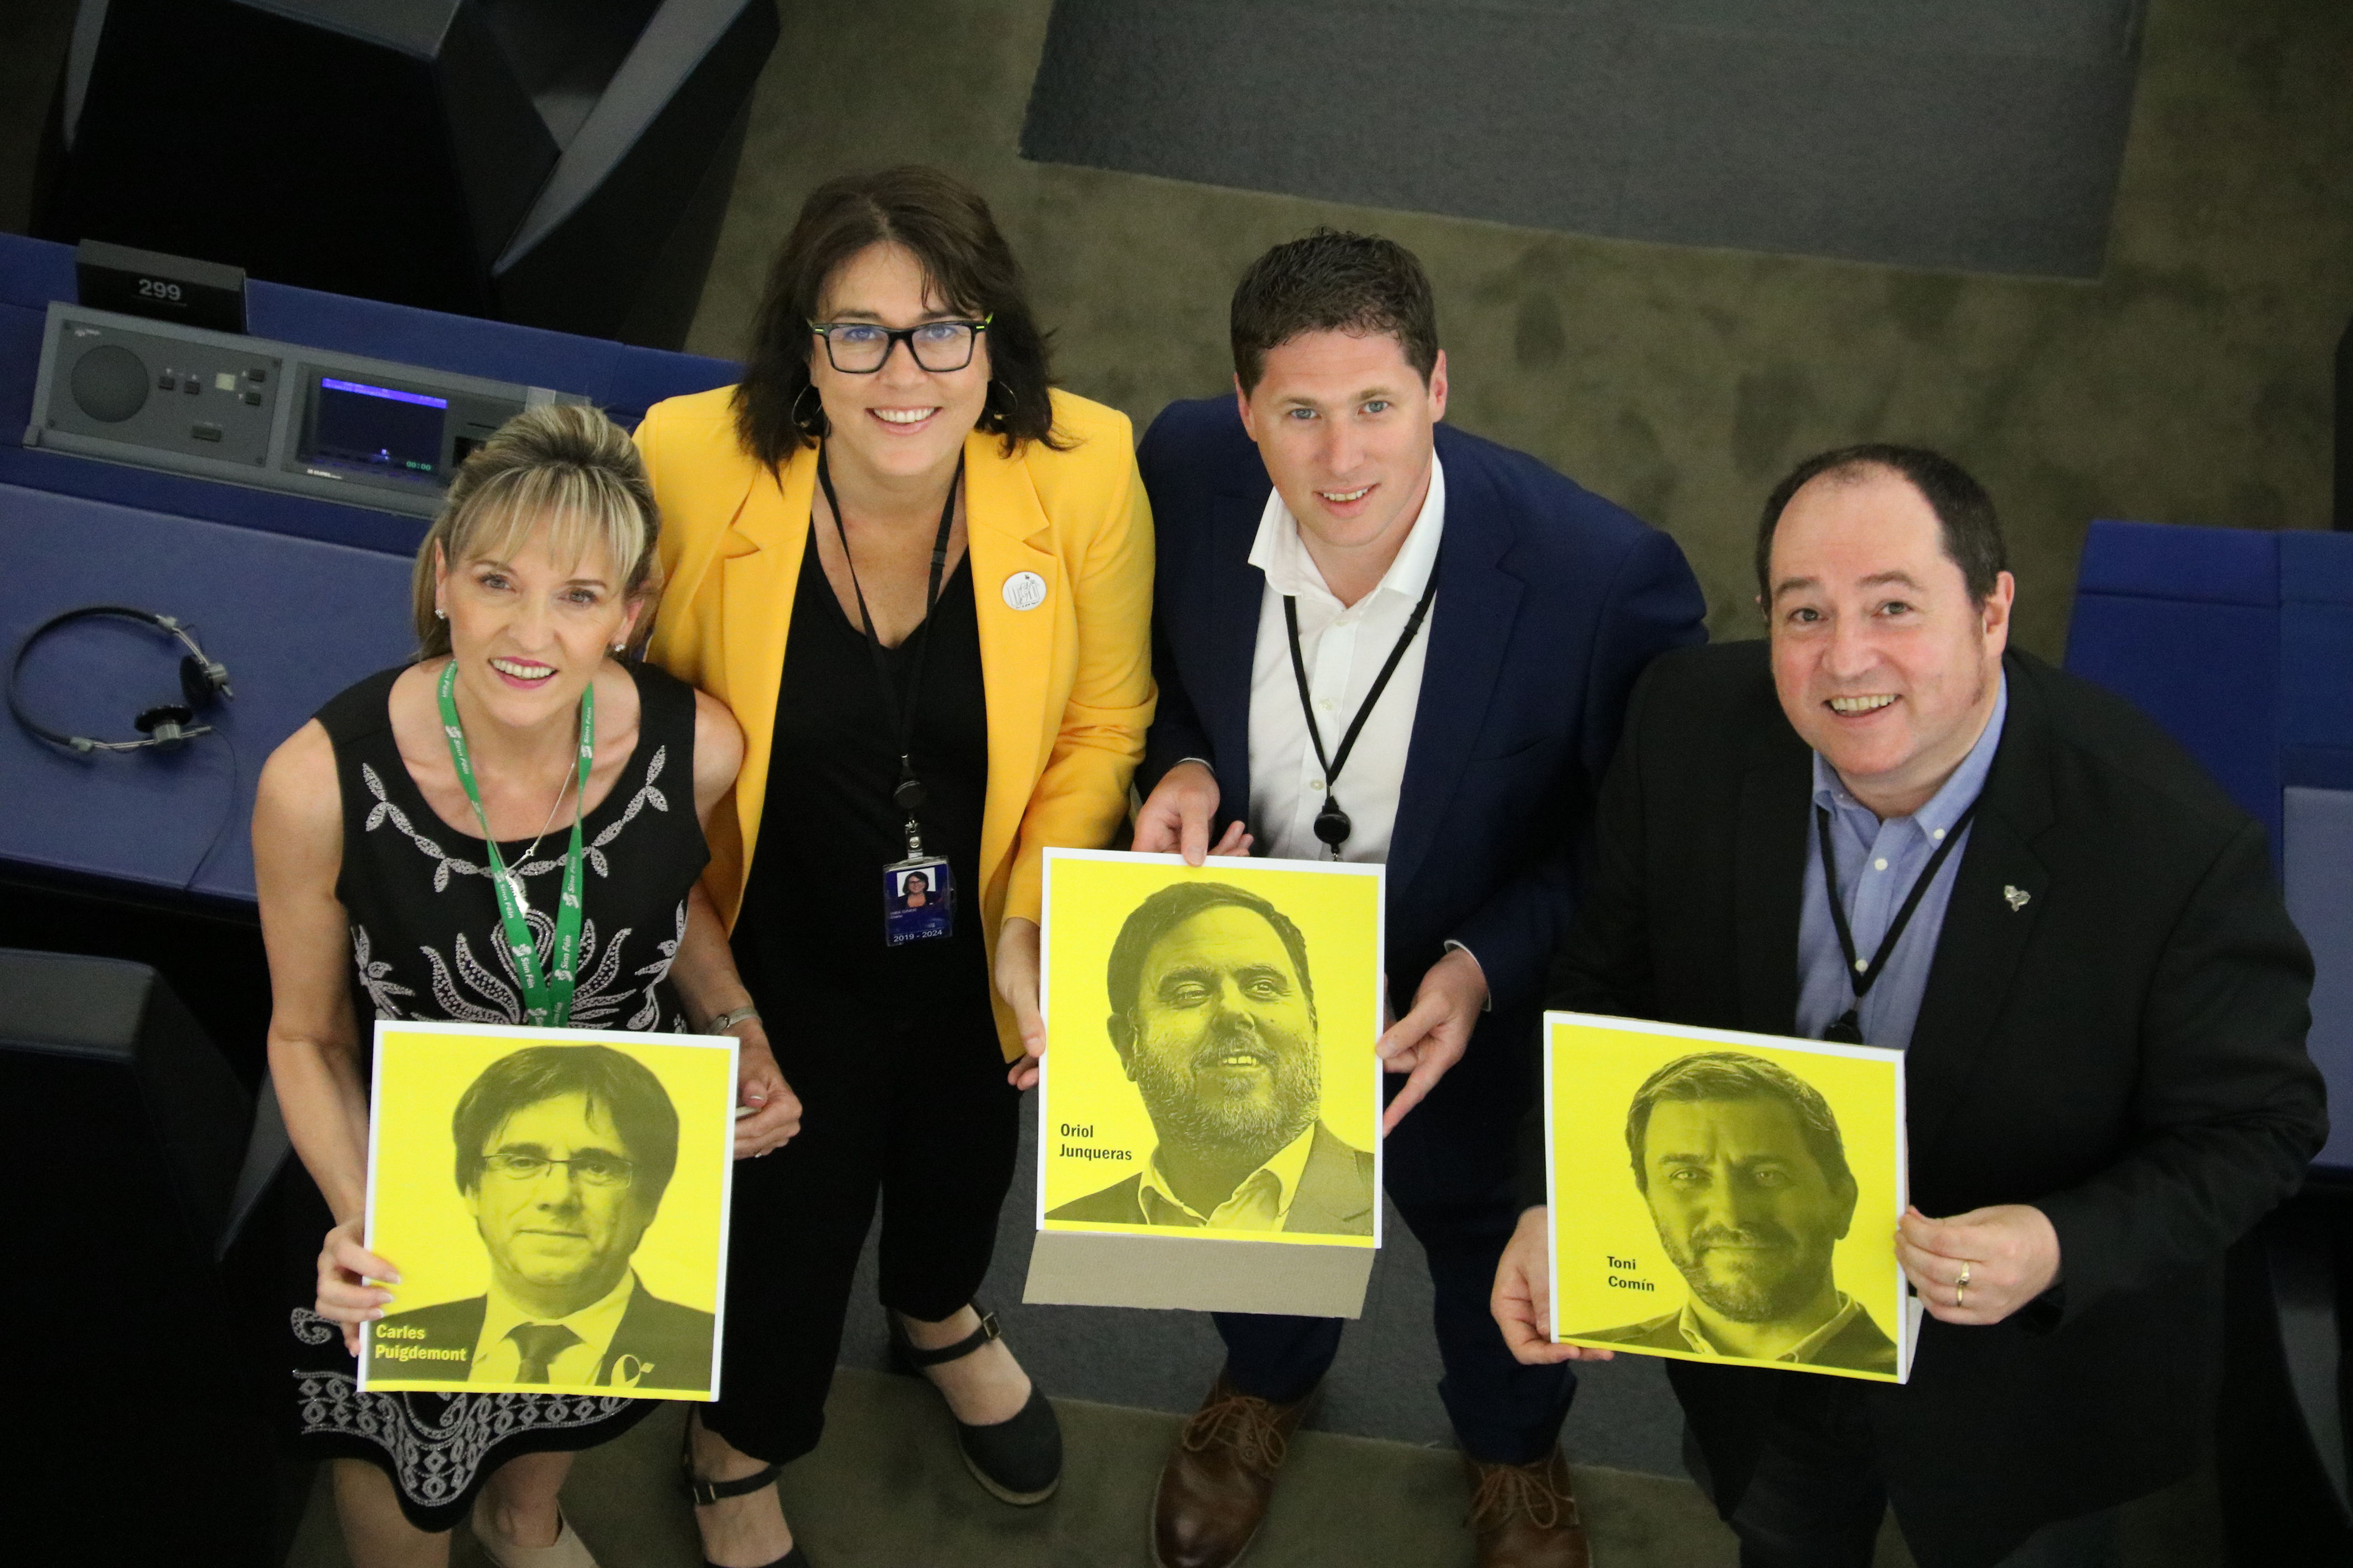 MEPs holding signs with the faces of Catalan leaders Carles Puigdemont, Oriol Junqueras, and Toni Comín (by ACN)